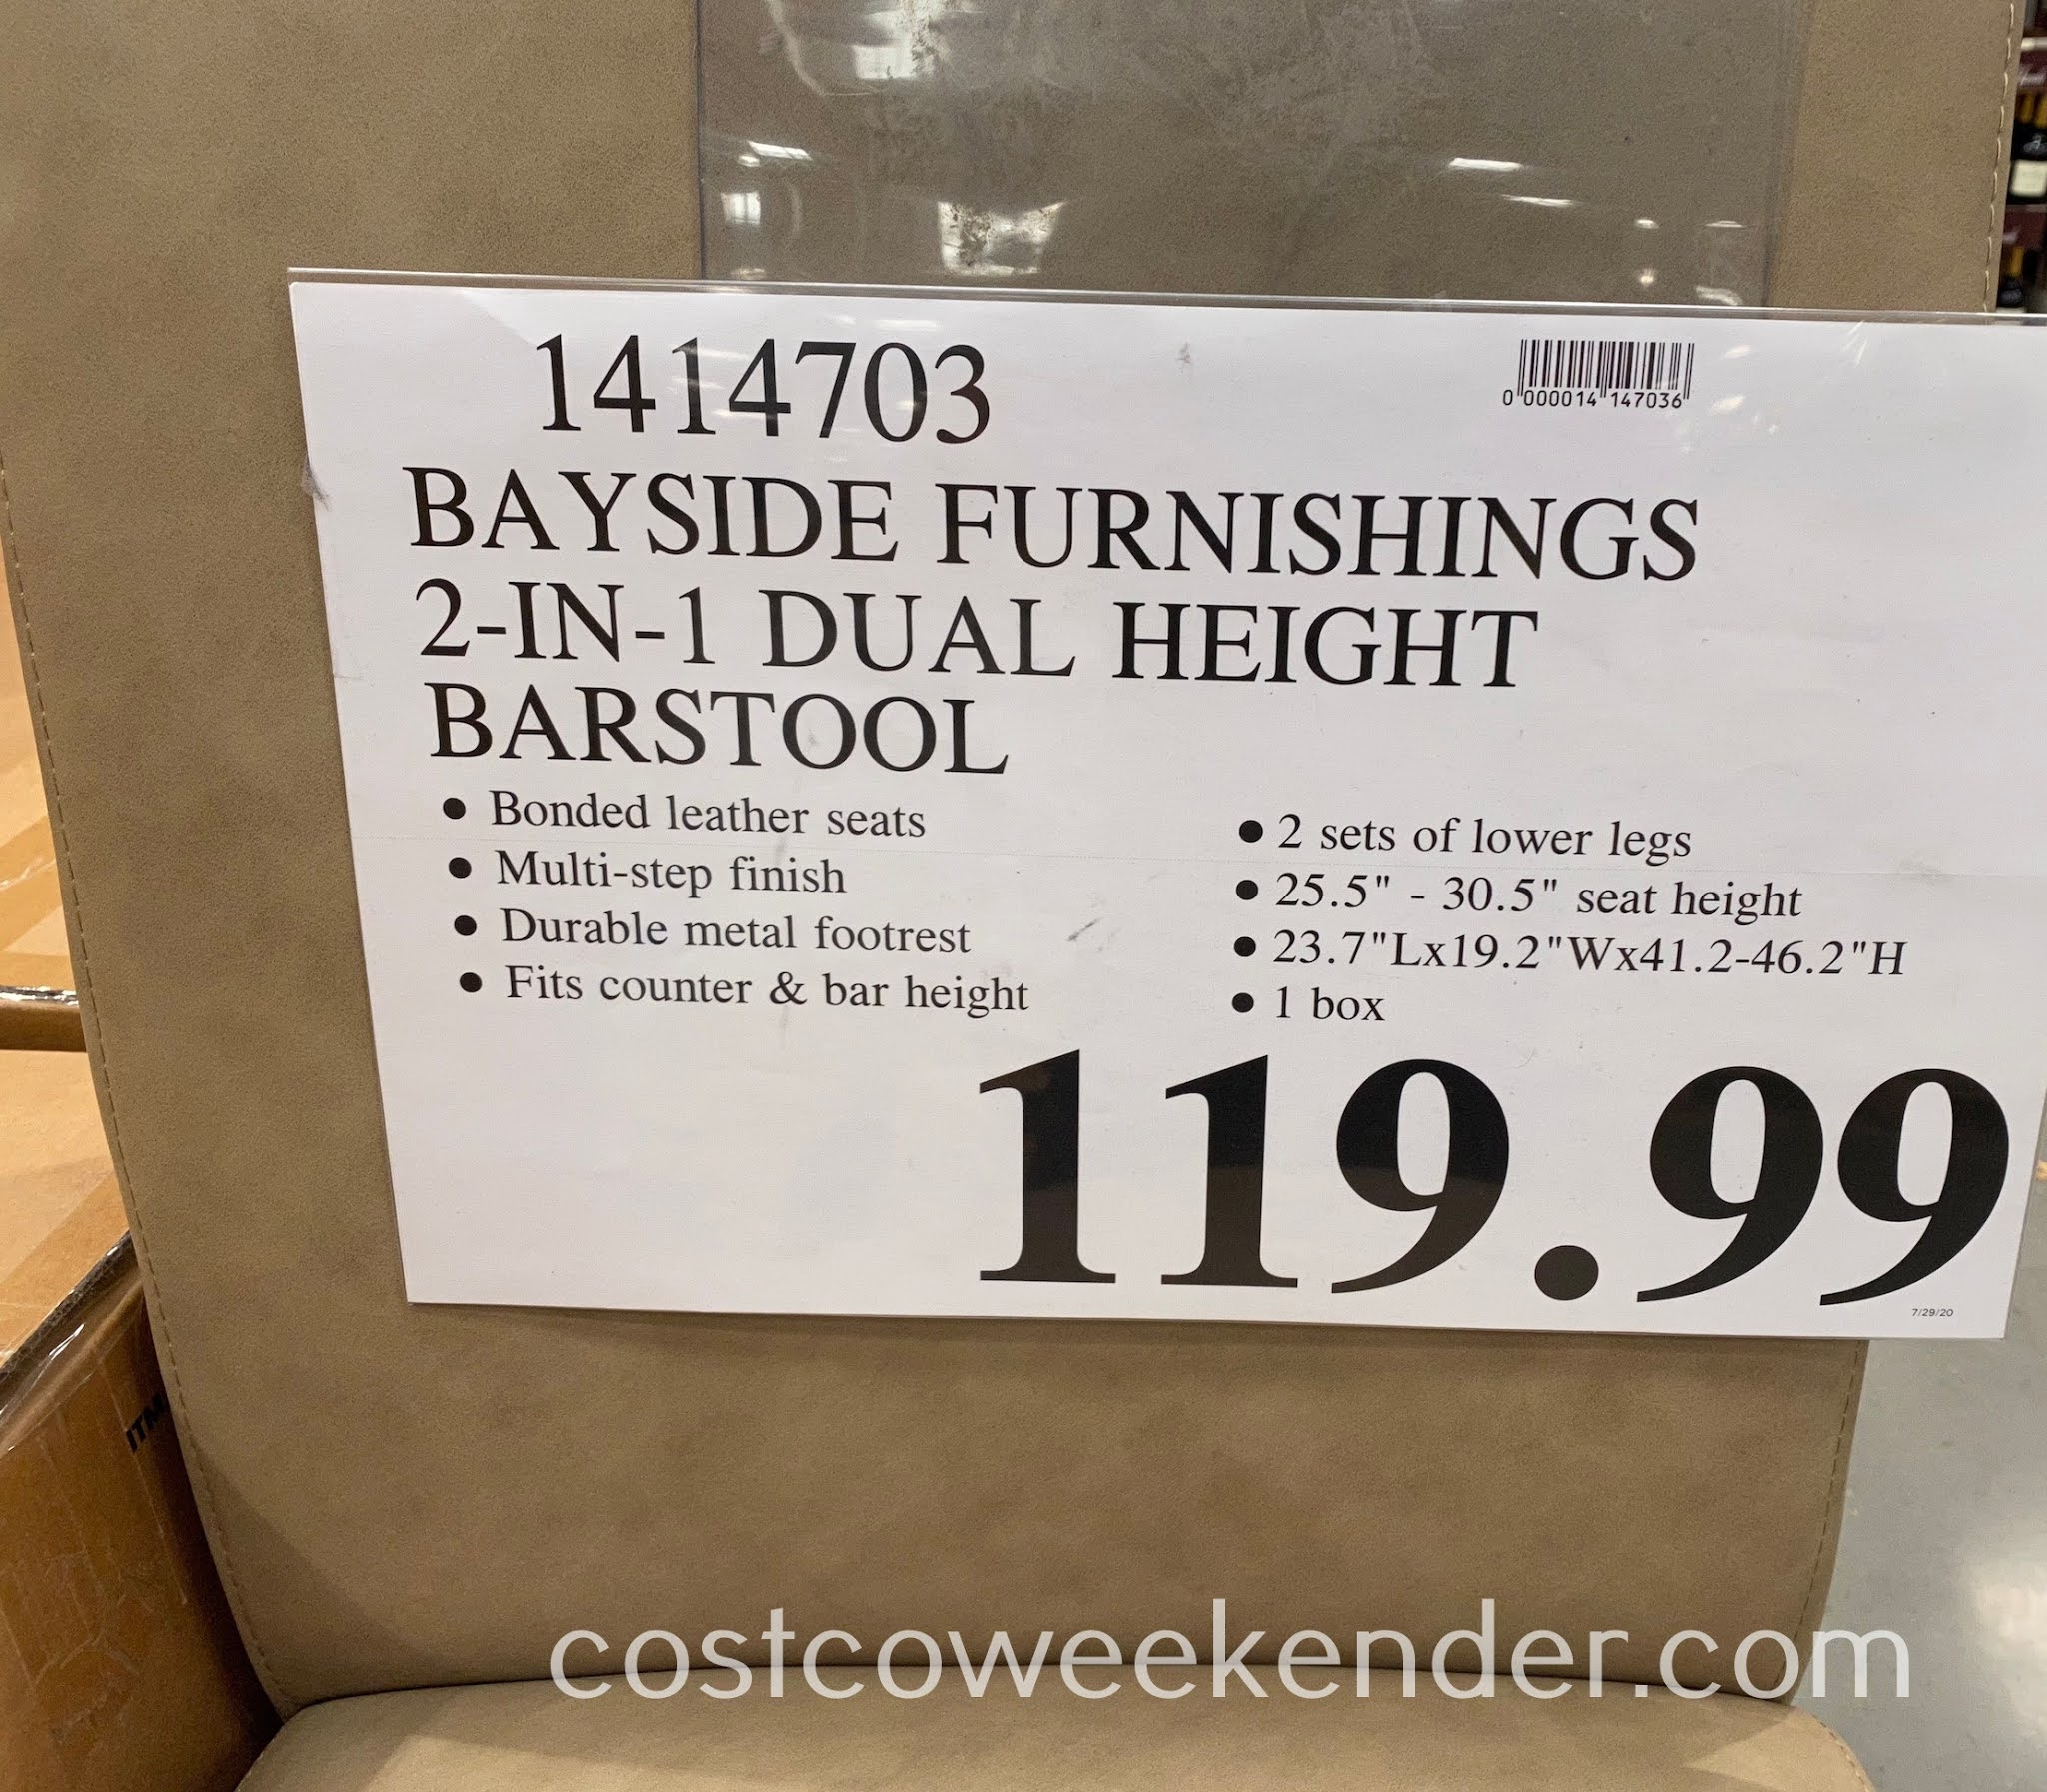 Deal for the Bayside Furnishings 2-in-1 Bar Stool at Costco